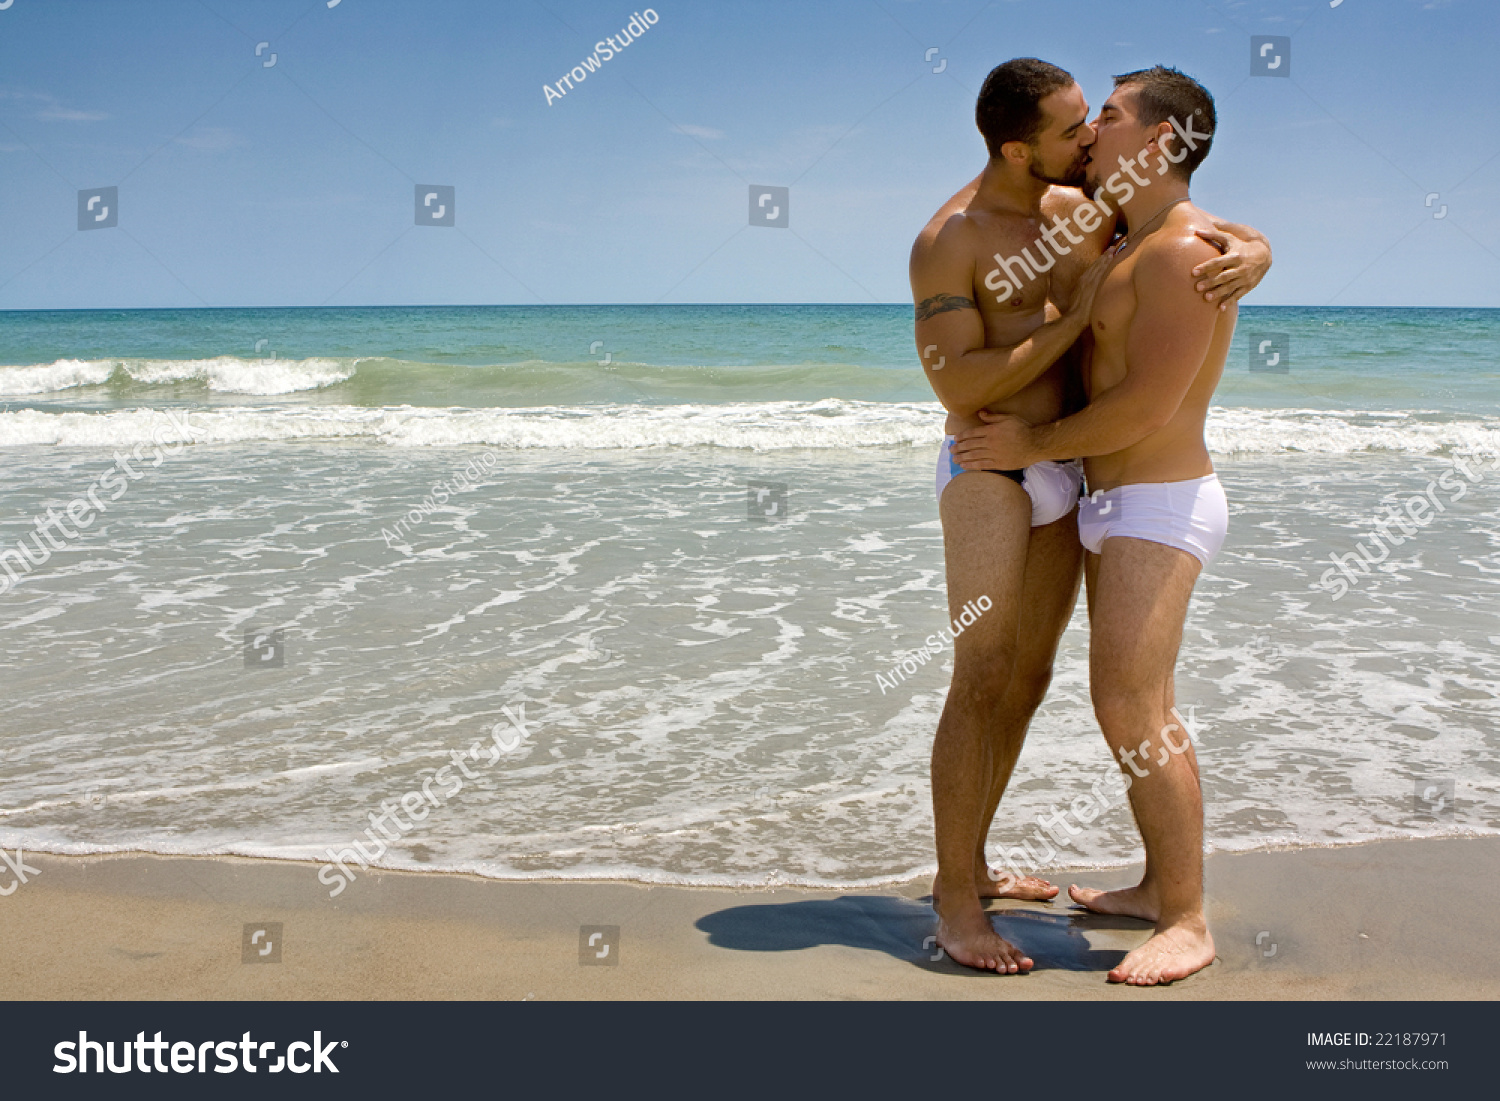 gay hotels in palm beach county